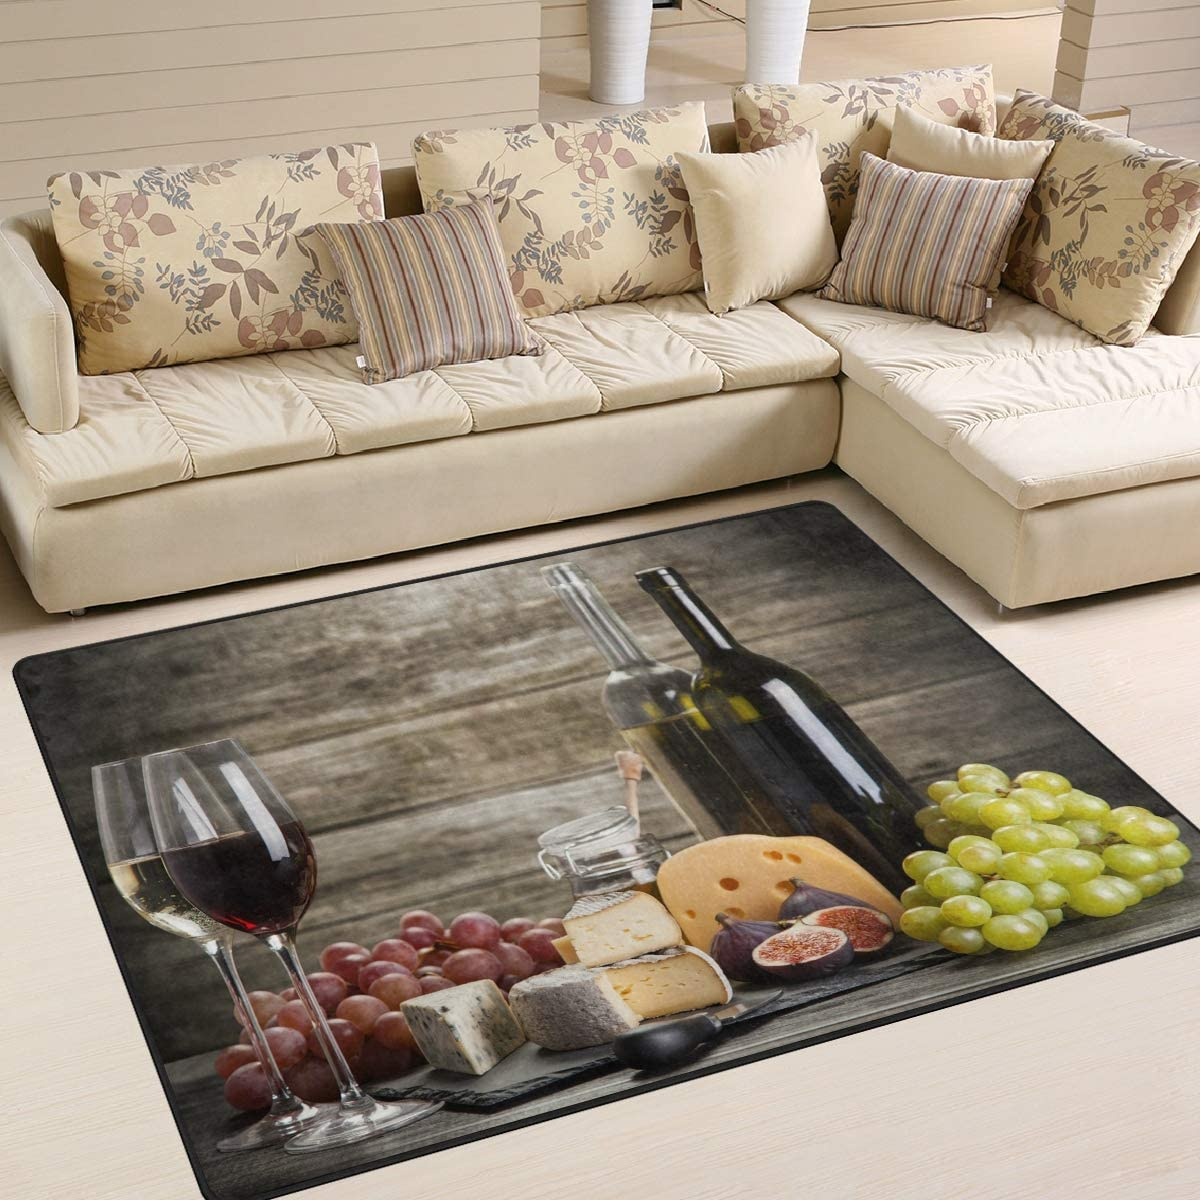 ALAZA Red Wine Cheese Fruit on Wooden Area Rug Rugs for Living Room Bedroom 7 x 5